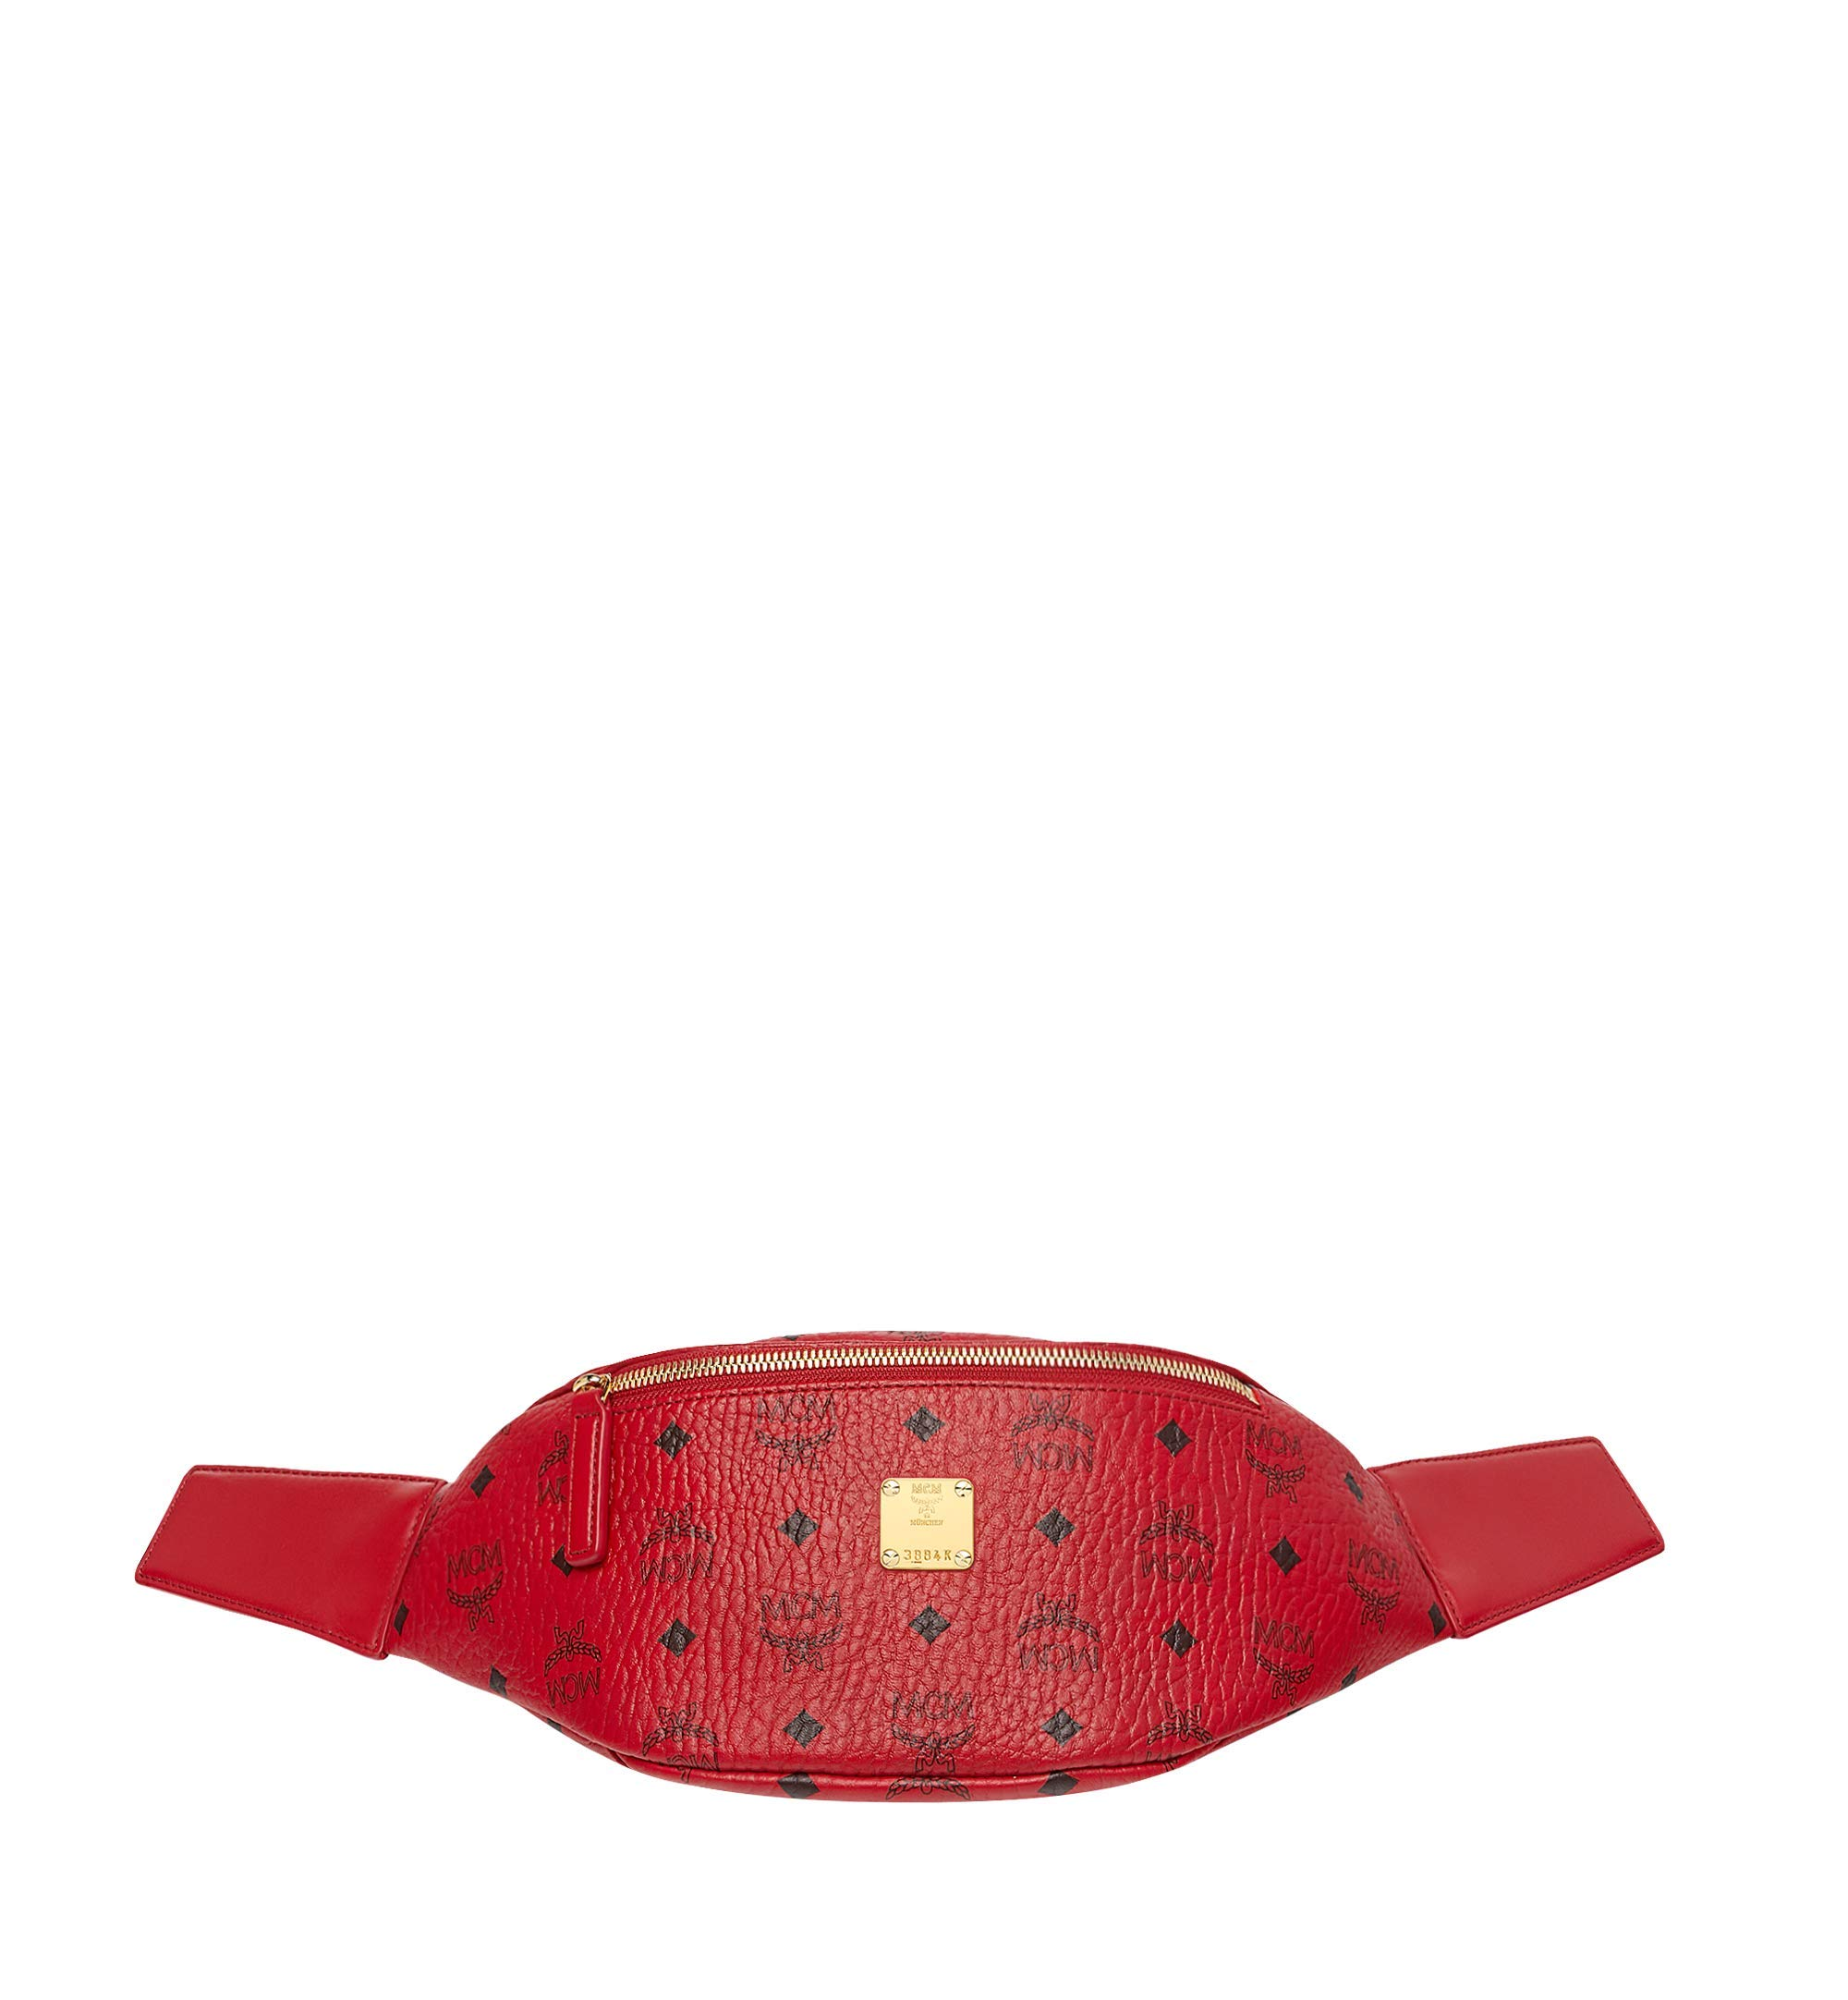 MCM Women's Project (RED) Stark Small Belt Bag, Ruby, ONE SIZE